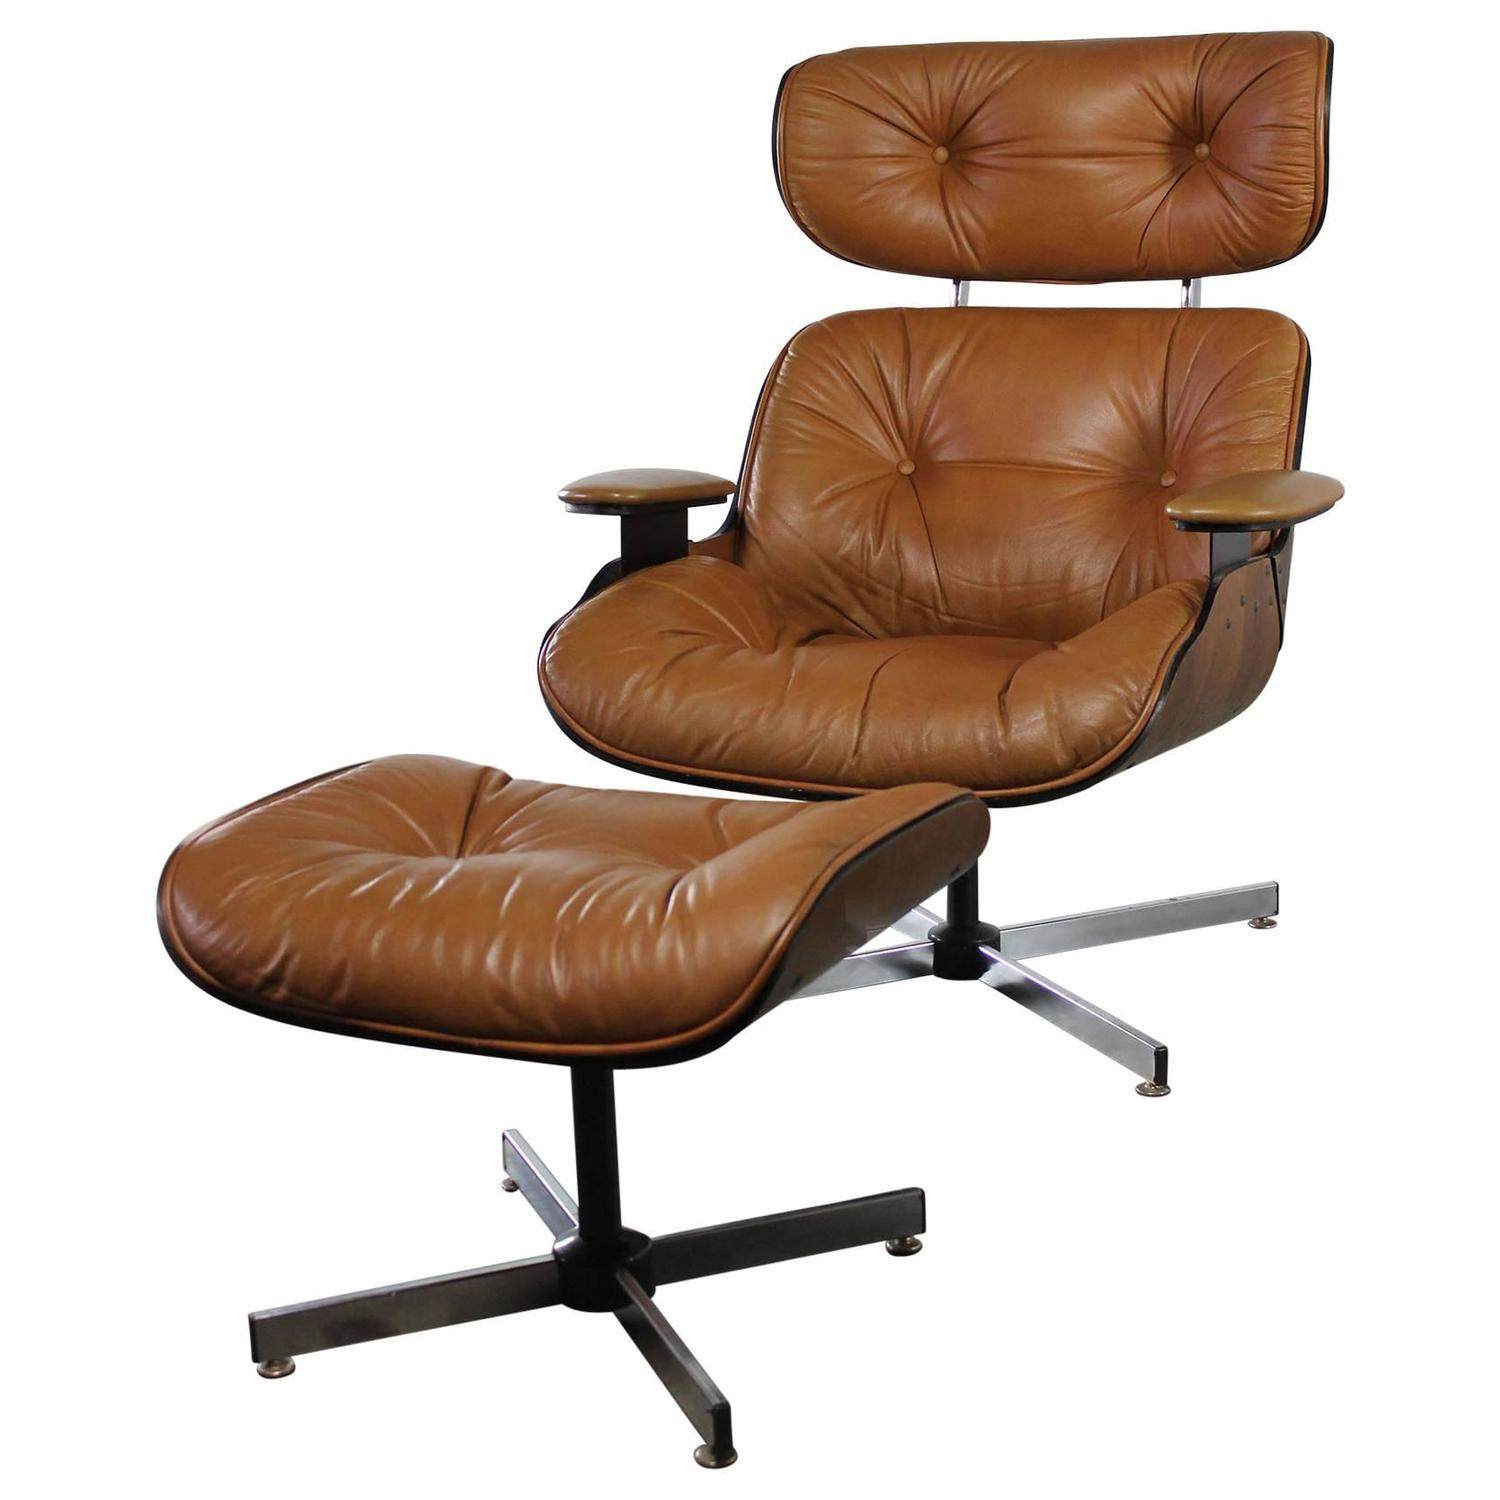 Mid century modern plycraft eames style lounge chair and ottoman for sale at - Lounge chair eames prix ...